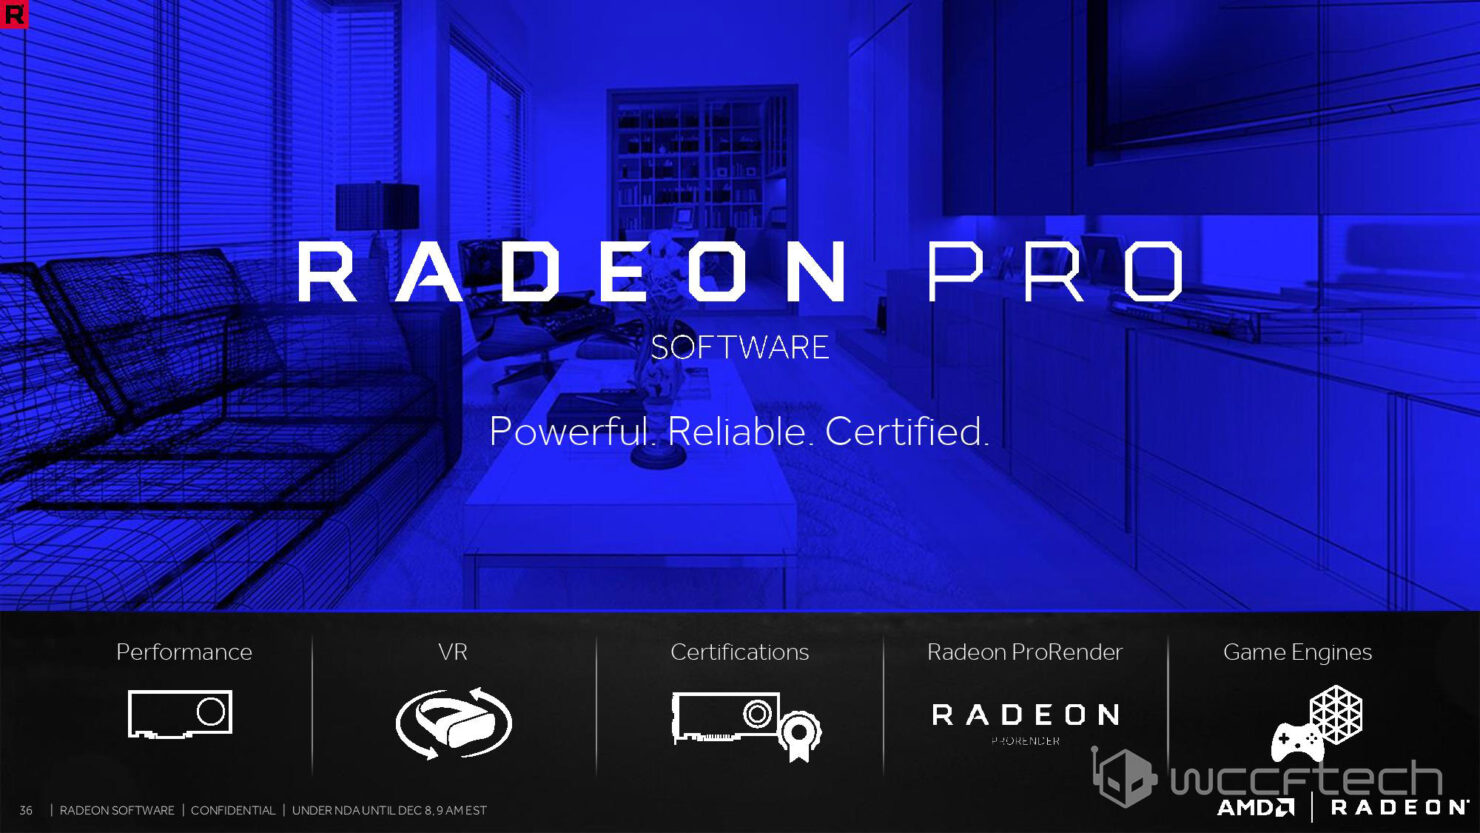 radeon-software-crimson-relive-nda-only-confidential-v4-page-036-copy